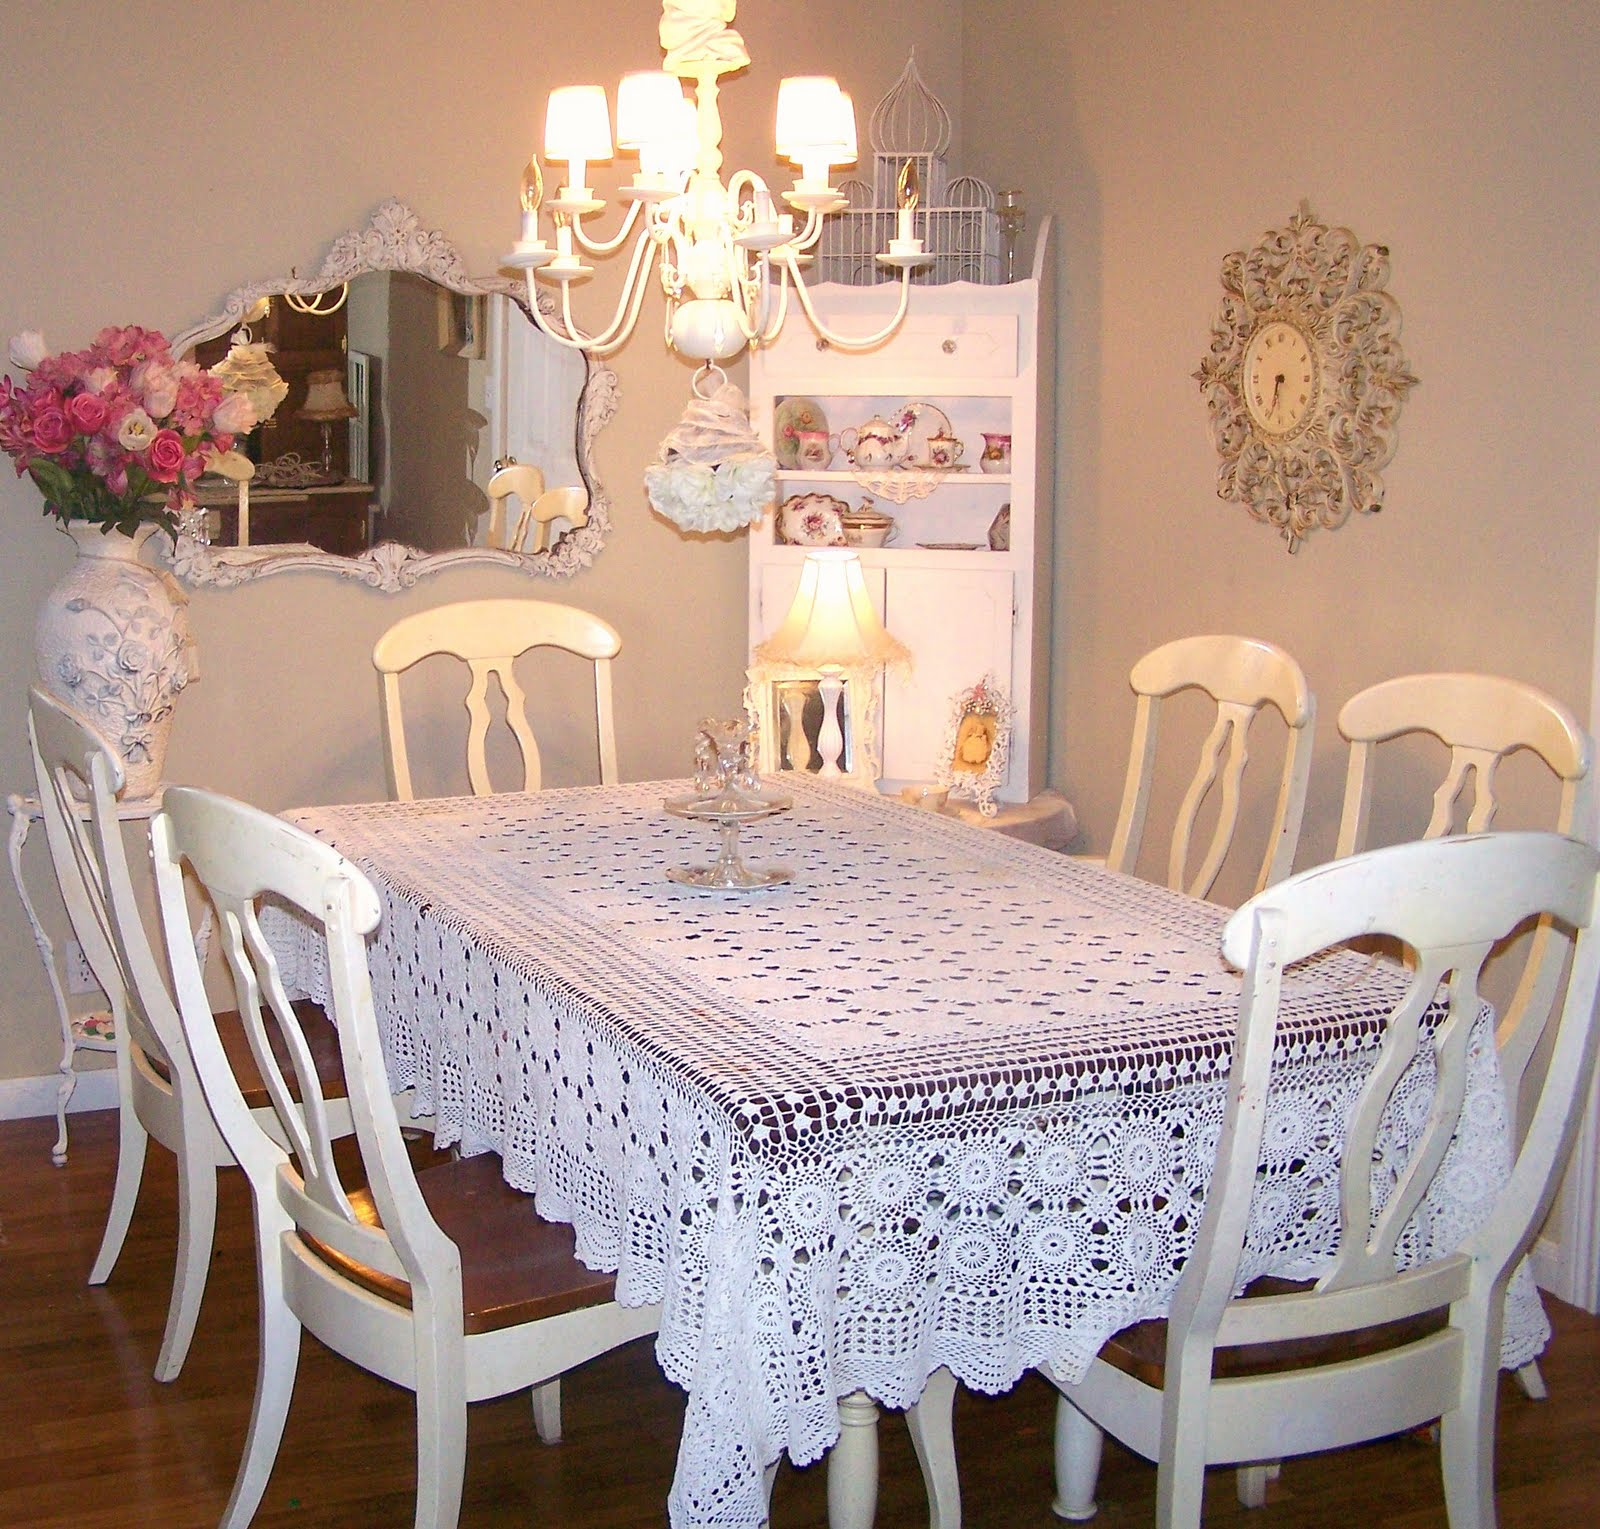 Olivia 39 s romantic home 04 11 10 - Shabby chic dining rooms ...